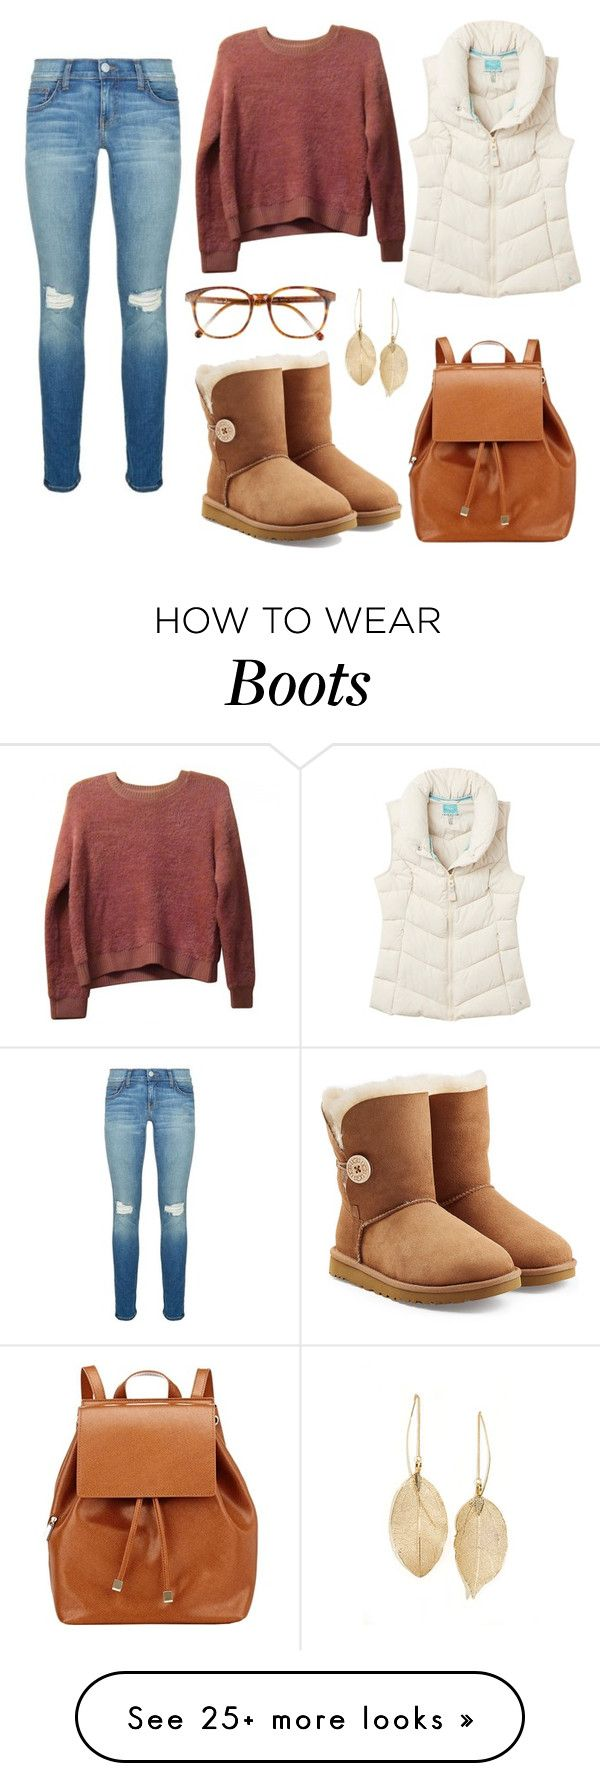 """ugg boots"" by shopaholic02 on Polyvore featuring Rebecca Minkoff, Barneys New York, UGG Australia, Steven Alan, Joules, Topshop and Lulu*s"